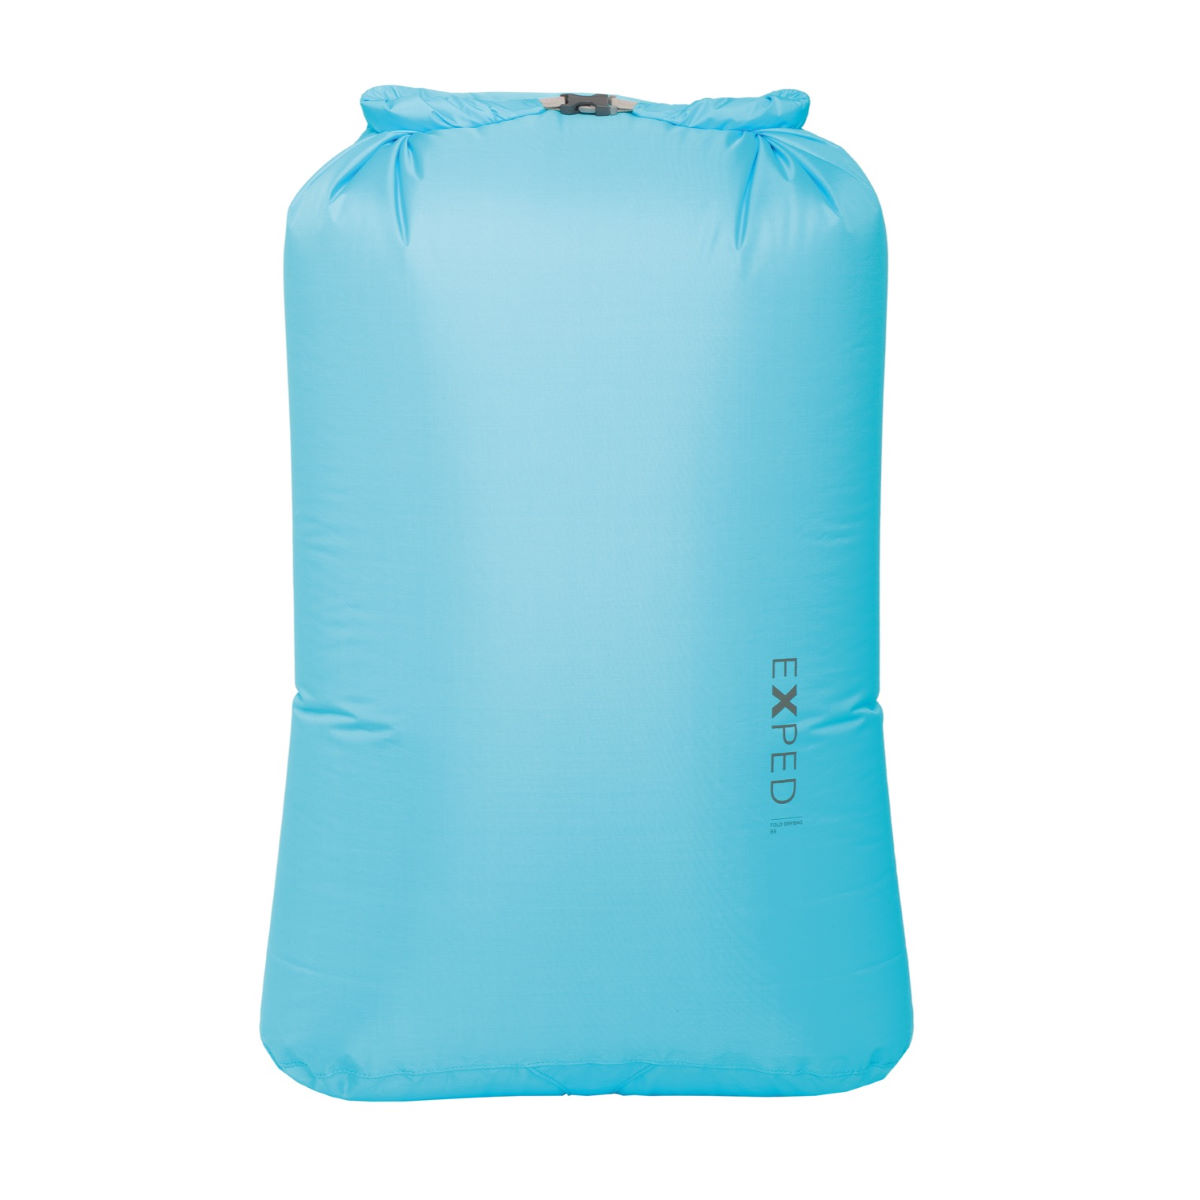 Exped Exped Fold-Drybag BS XXL (40L)   Dry Bags